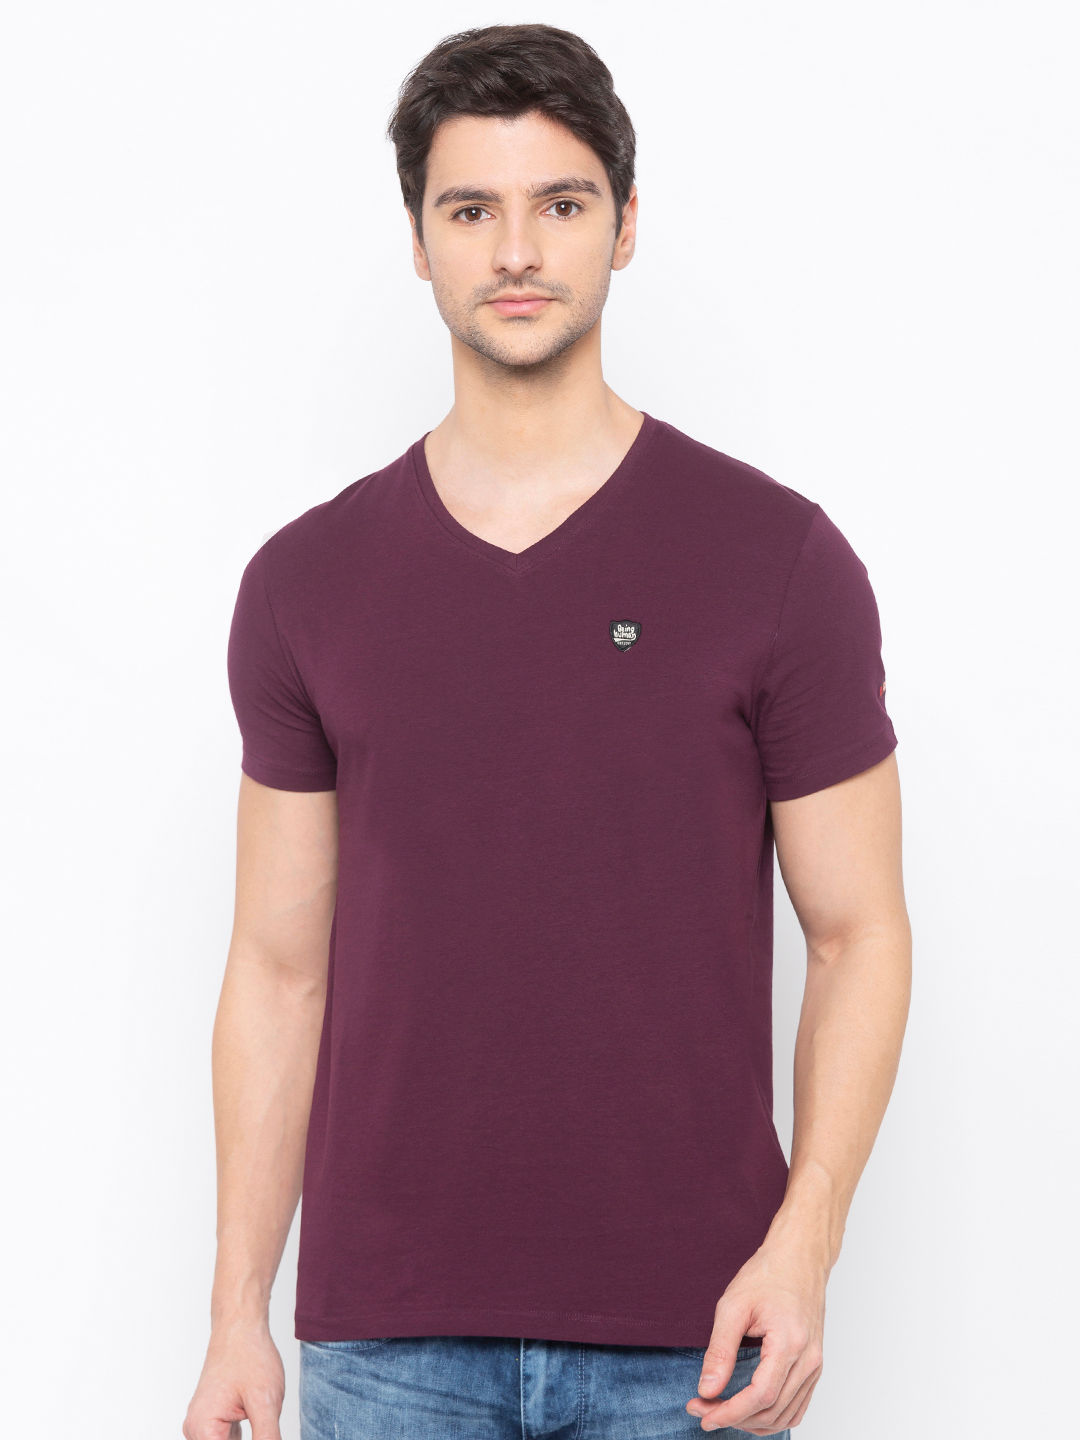 Mens Short Sleeve V Neck with Woven emb patch